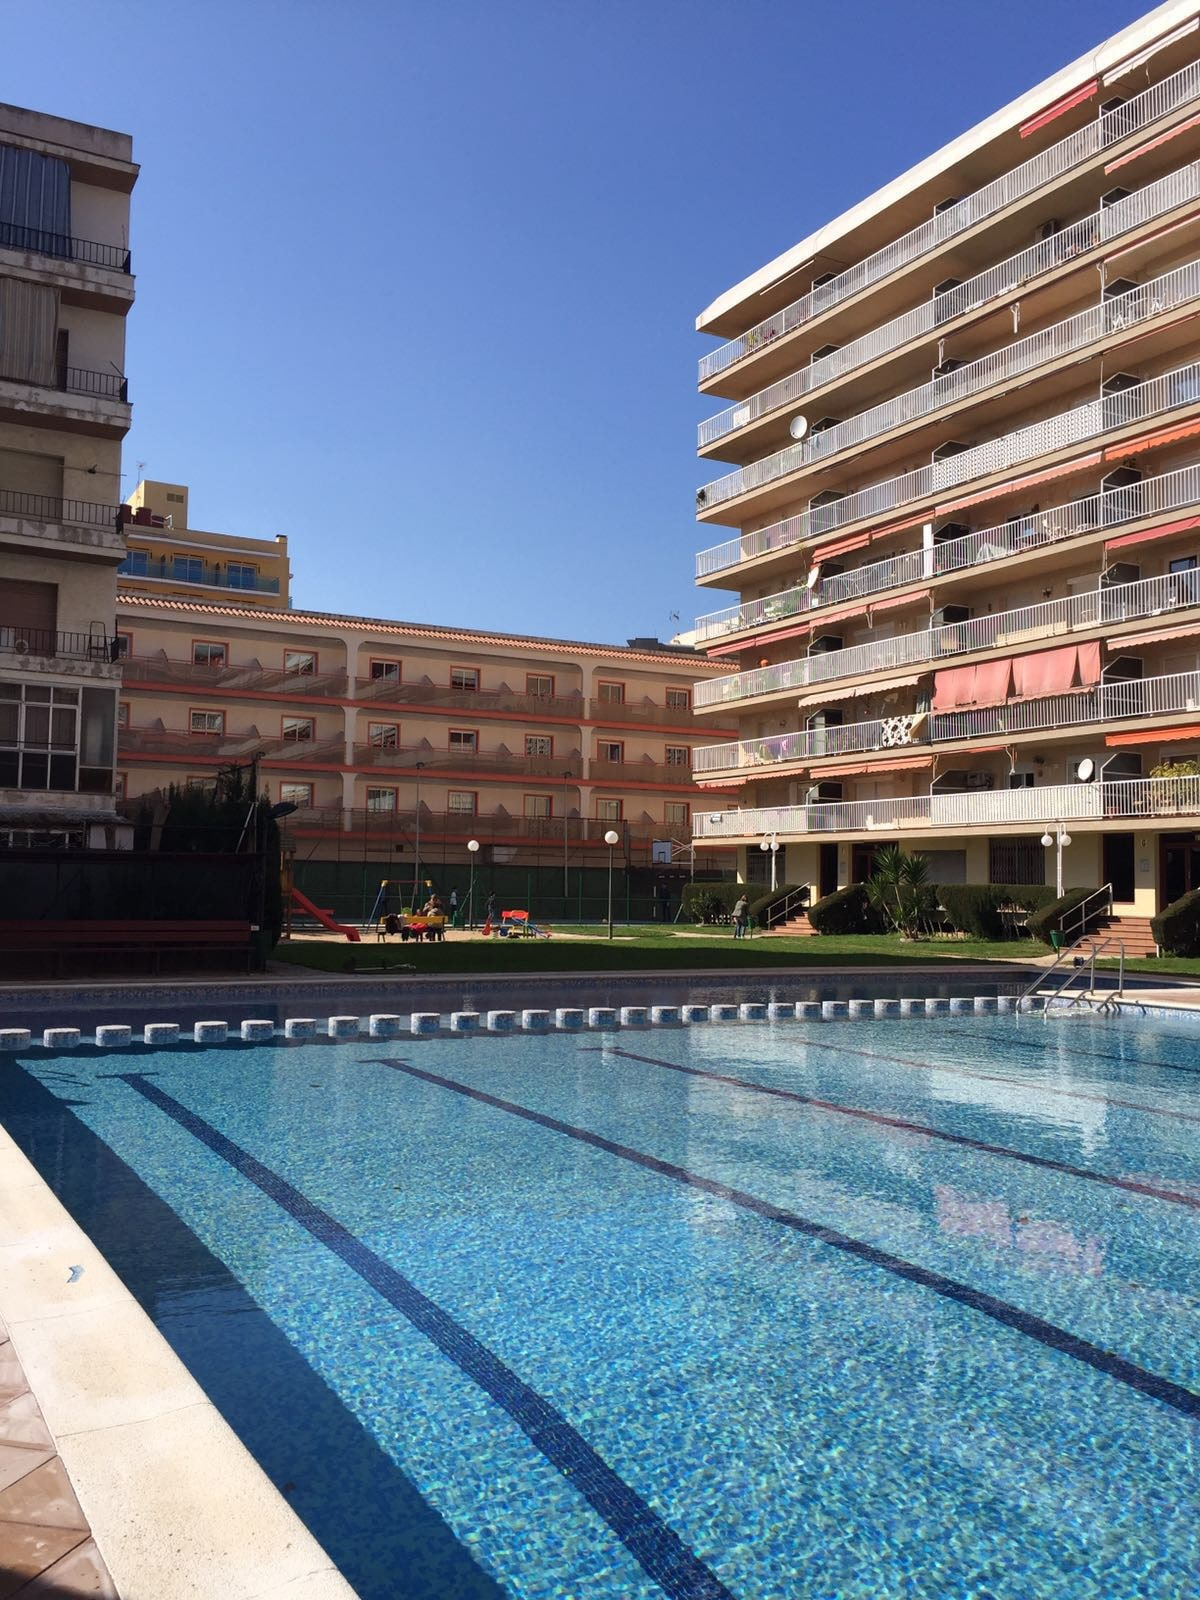 Beach Appartment With Nice Swiming Pool Condominiums For